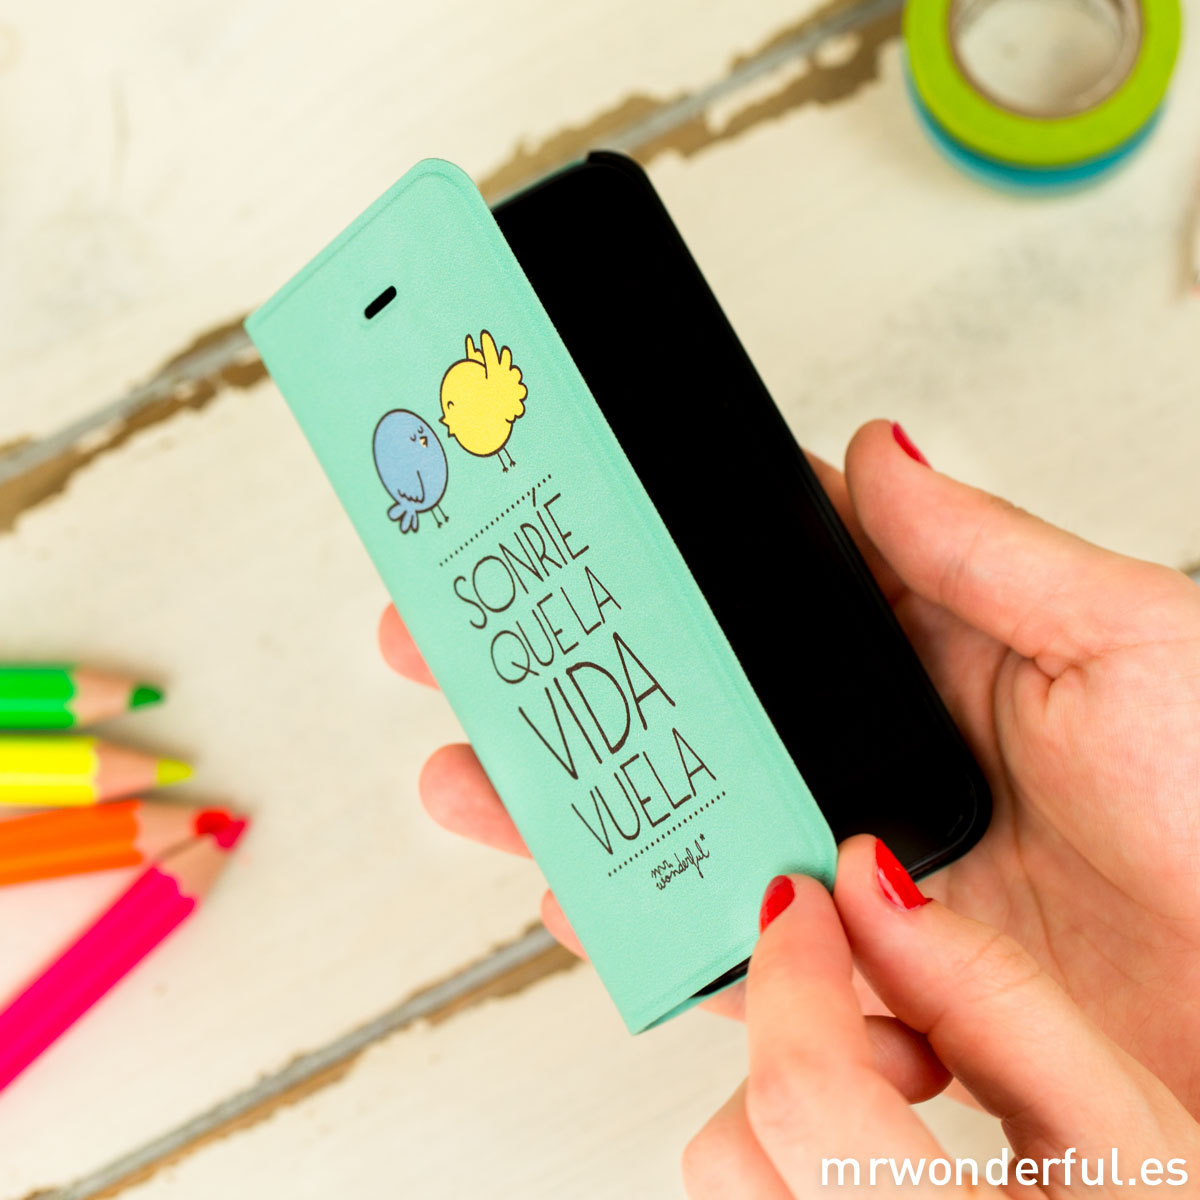 mrwonderful_MRFOL003_funda-mint-iphone-5-5s_sonrie-vida-vuela-25